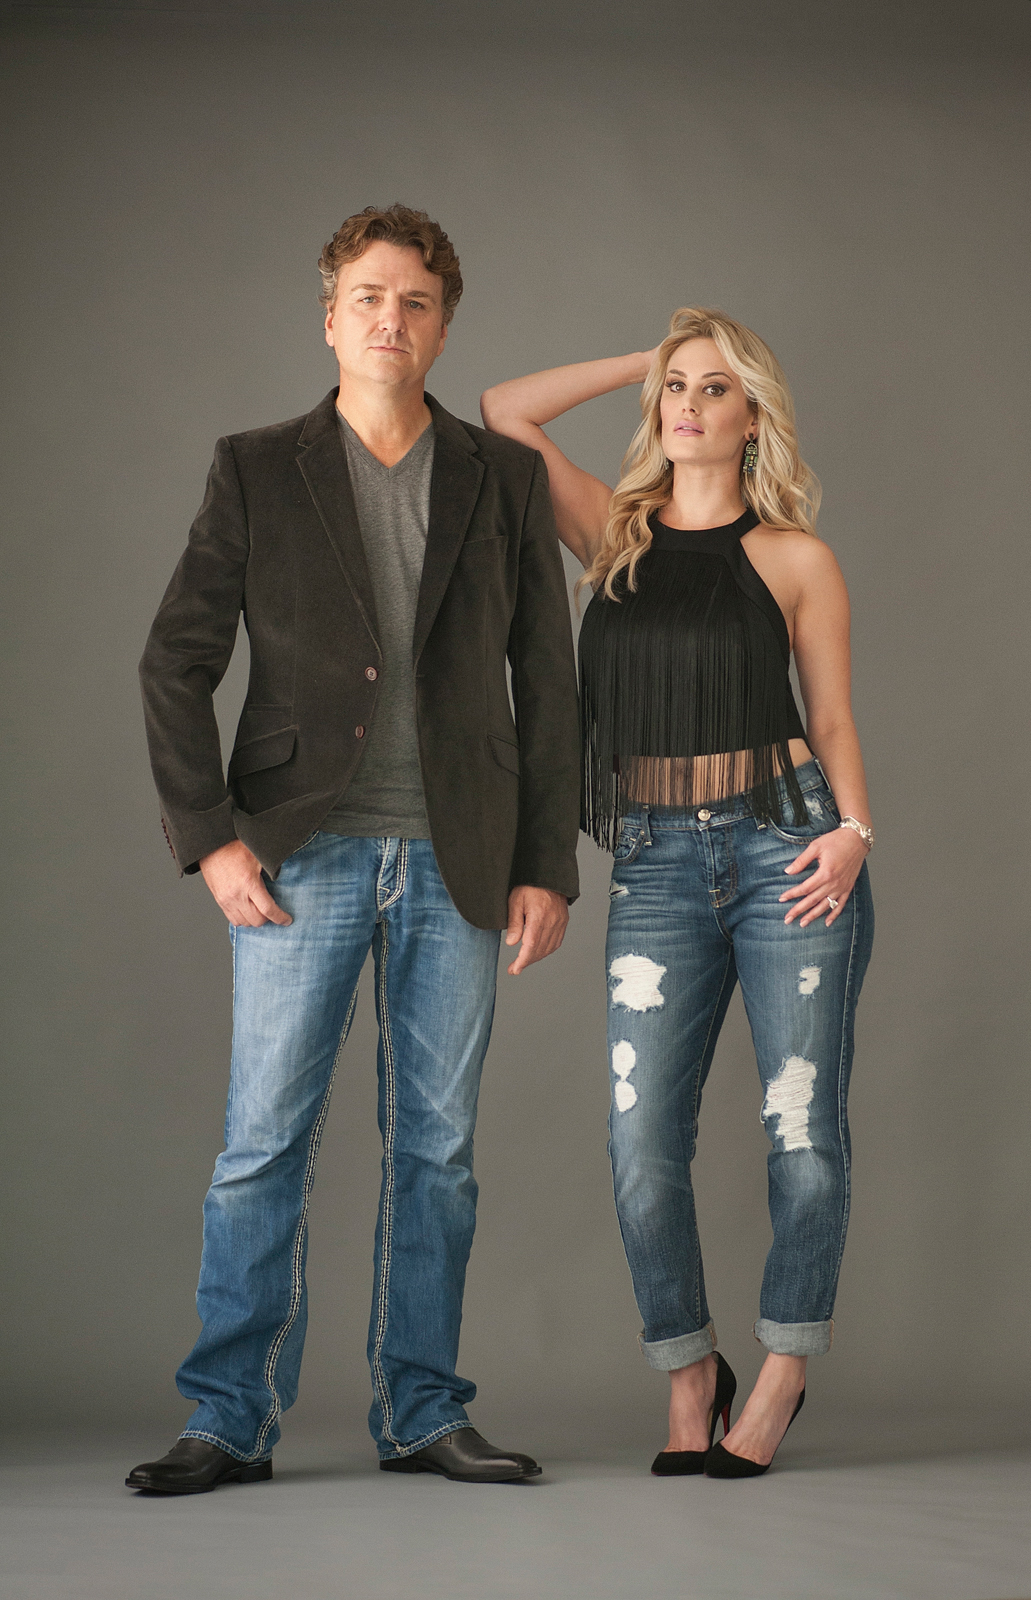 4b-husband-wife-couple-pose-attitude-jeans-standing.jpg